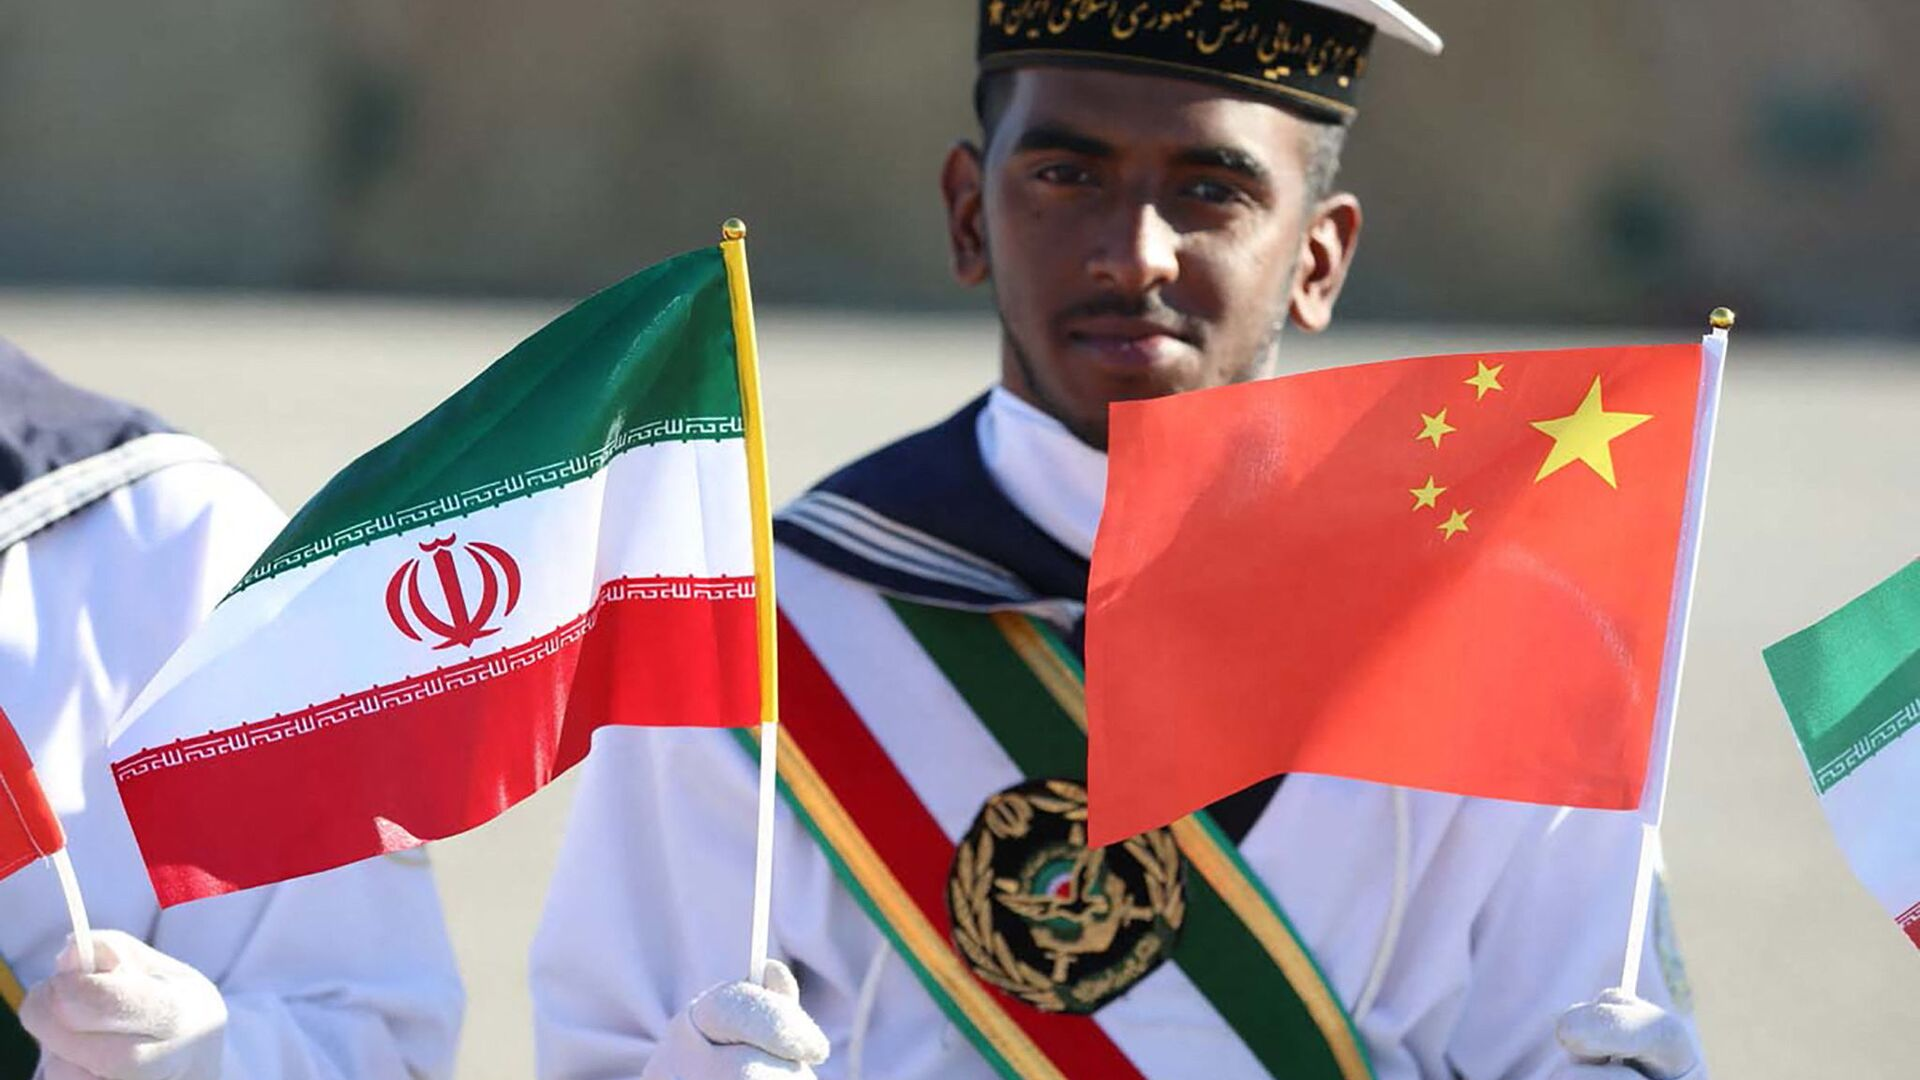 Exercice militaire Chine Iran Russie - Sputnik France, 1920, 20.09.2021